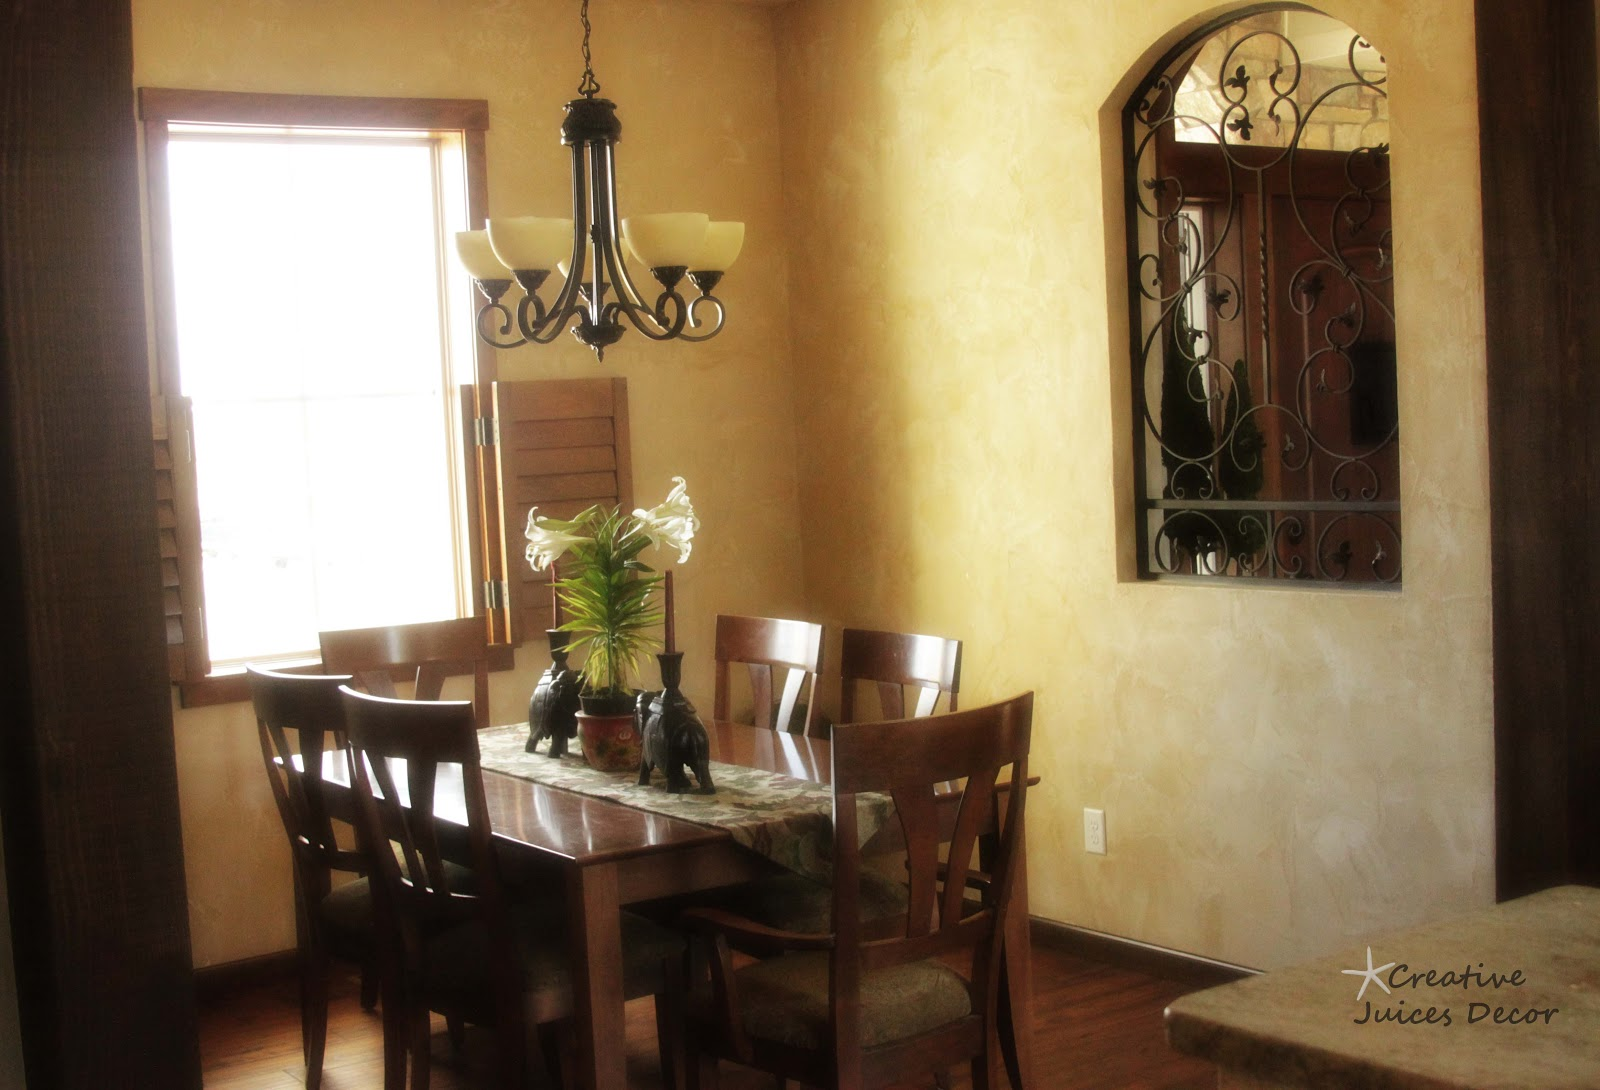 Creative juices decor all about foyers and entries focal for Tuscan dining room